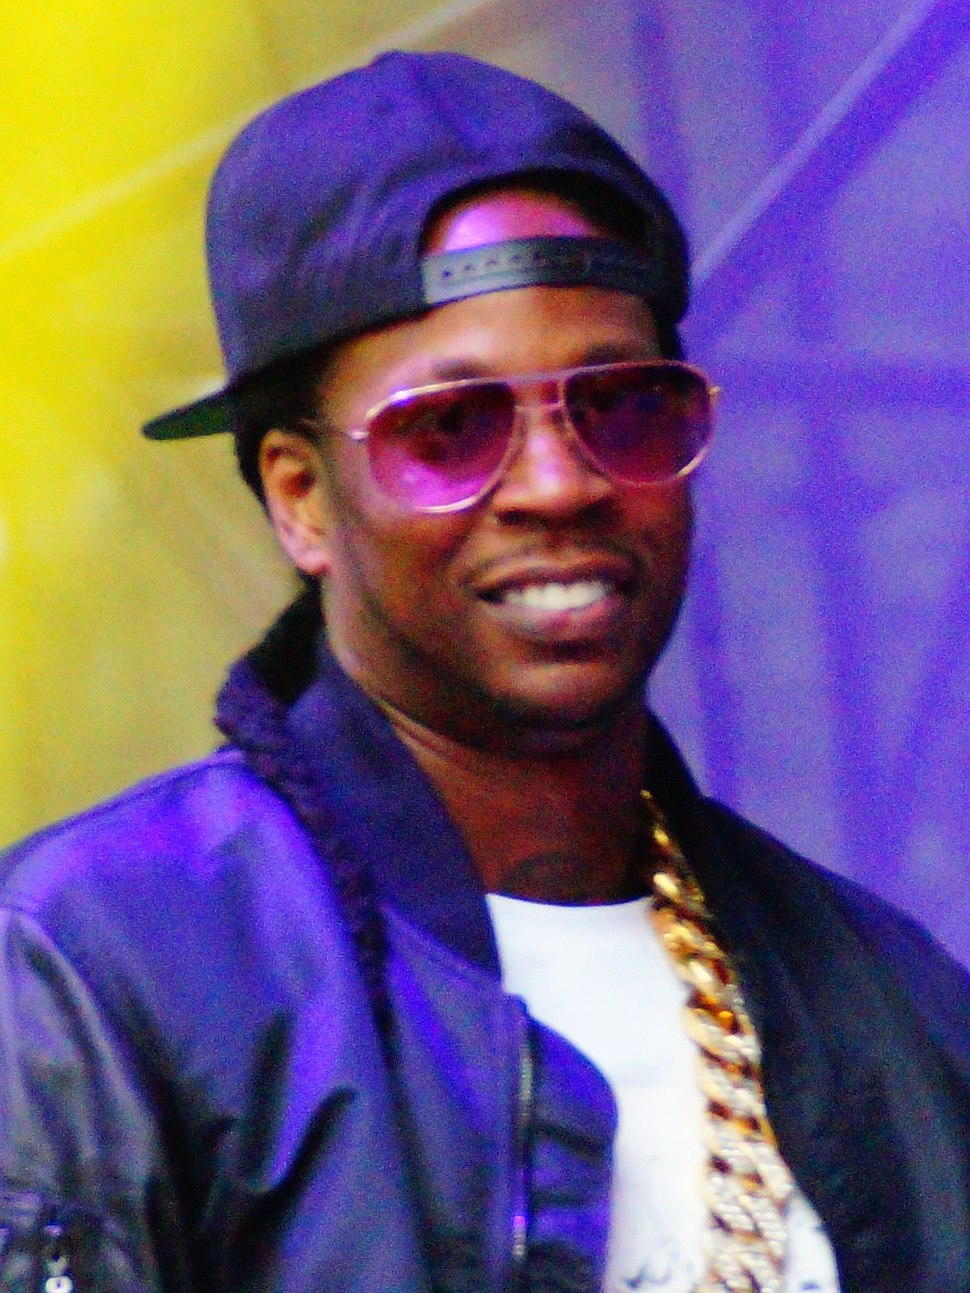 2 Chainz May 2014 2 (cropped)